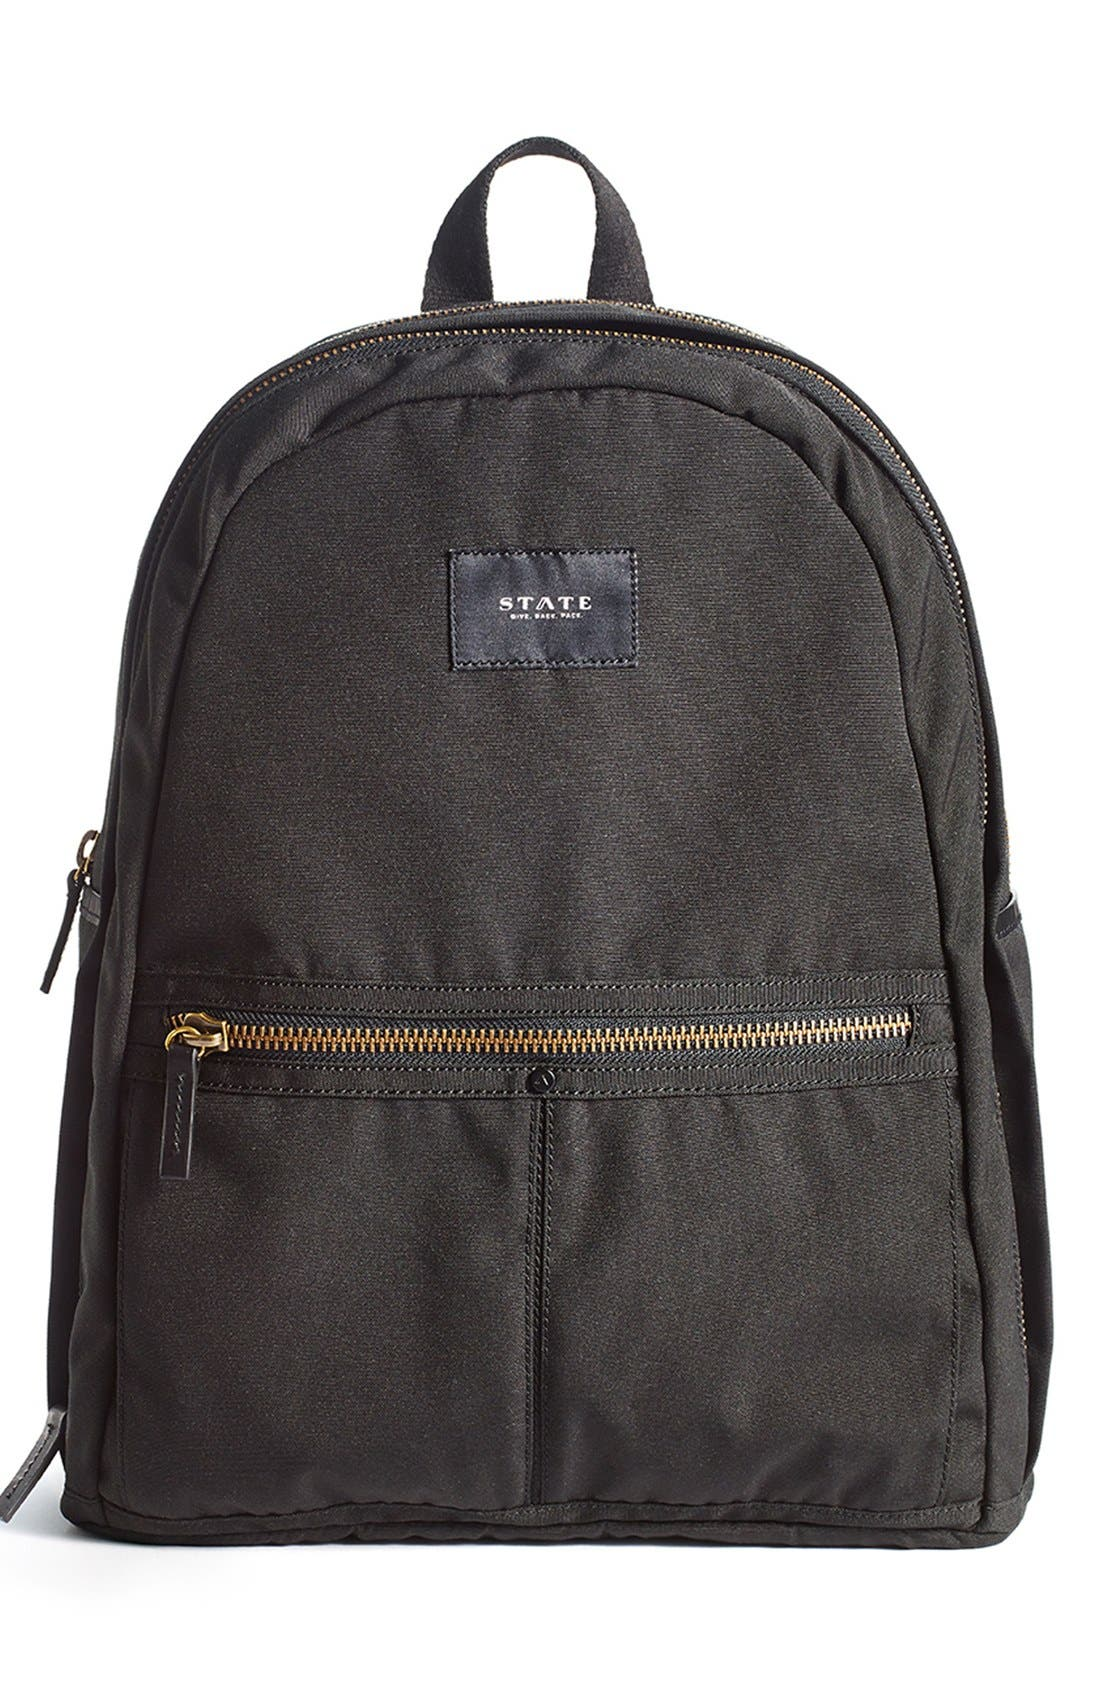 'Union' Water Resistant Backpack with Leather Trim,                             Main thumbnail 1, color,                             001